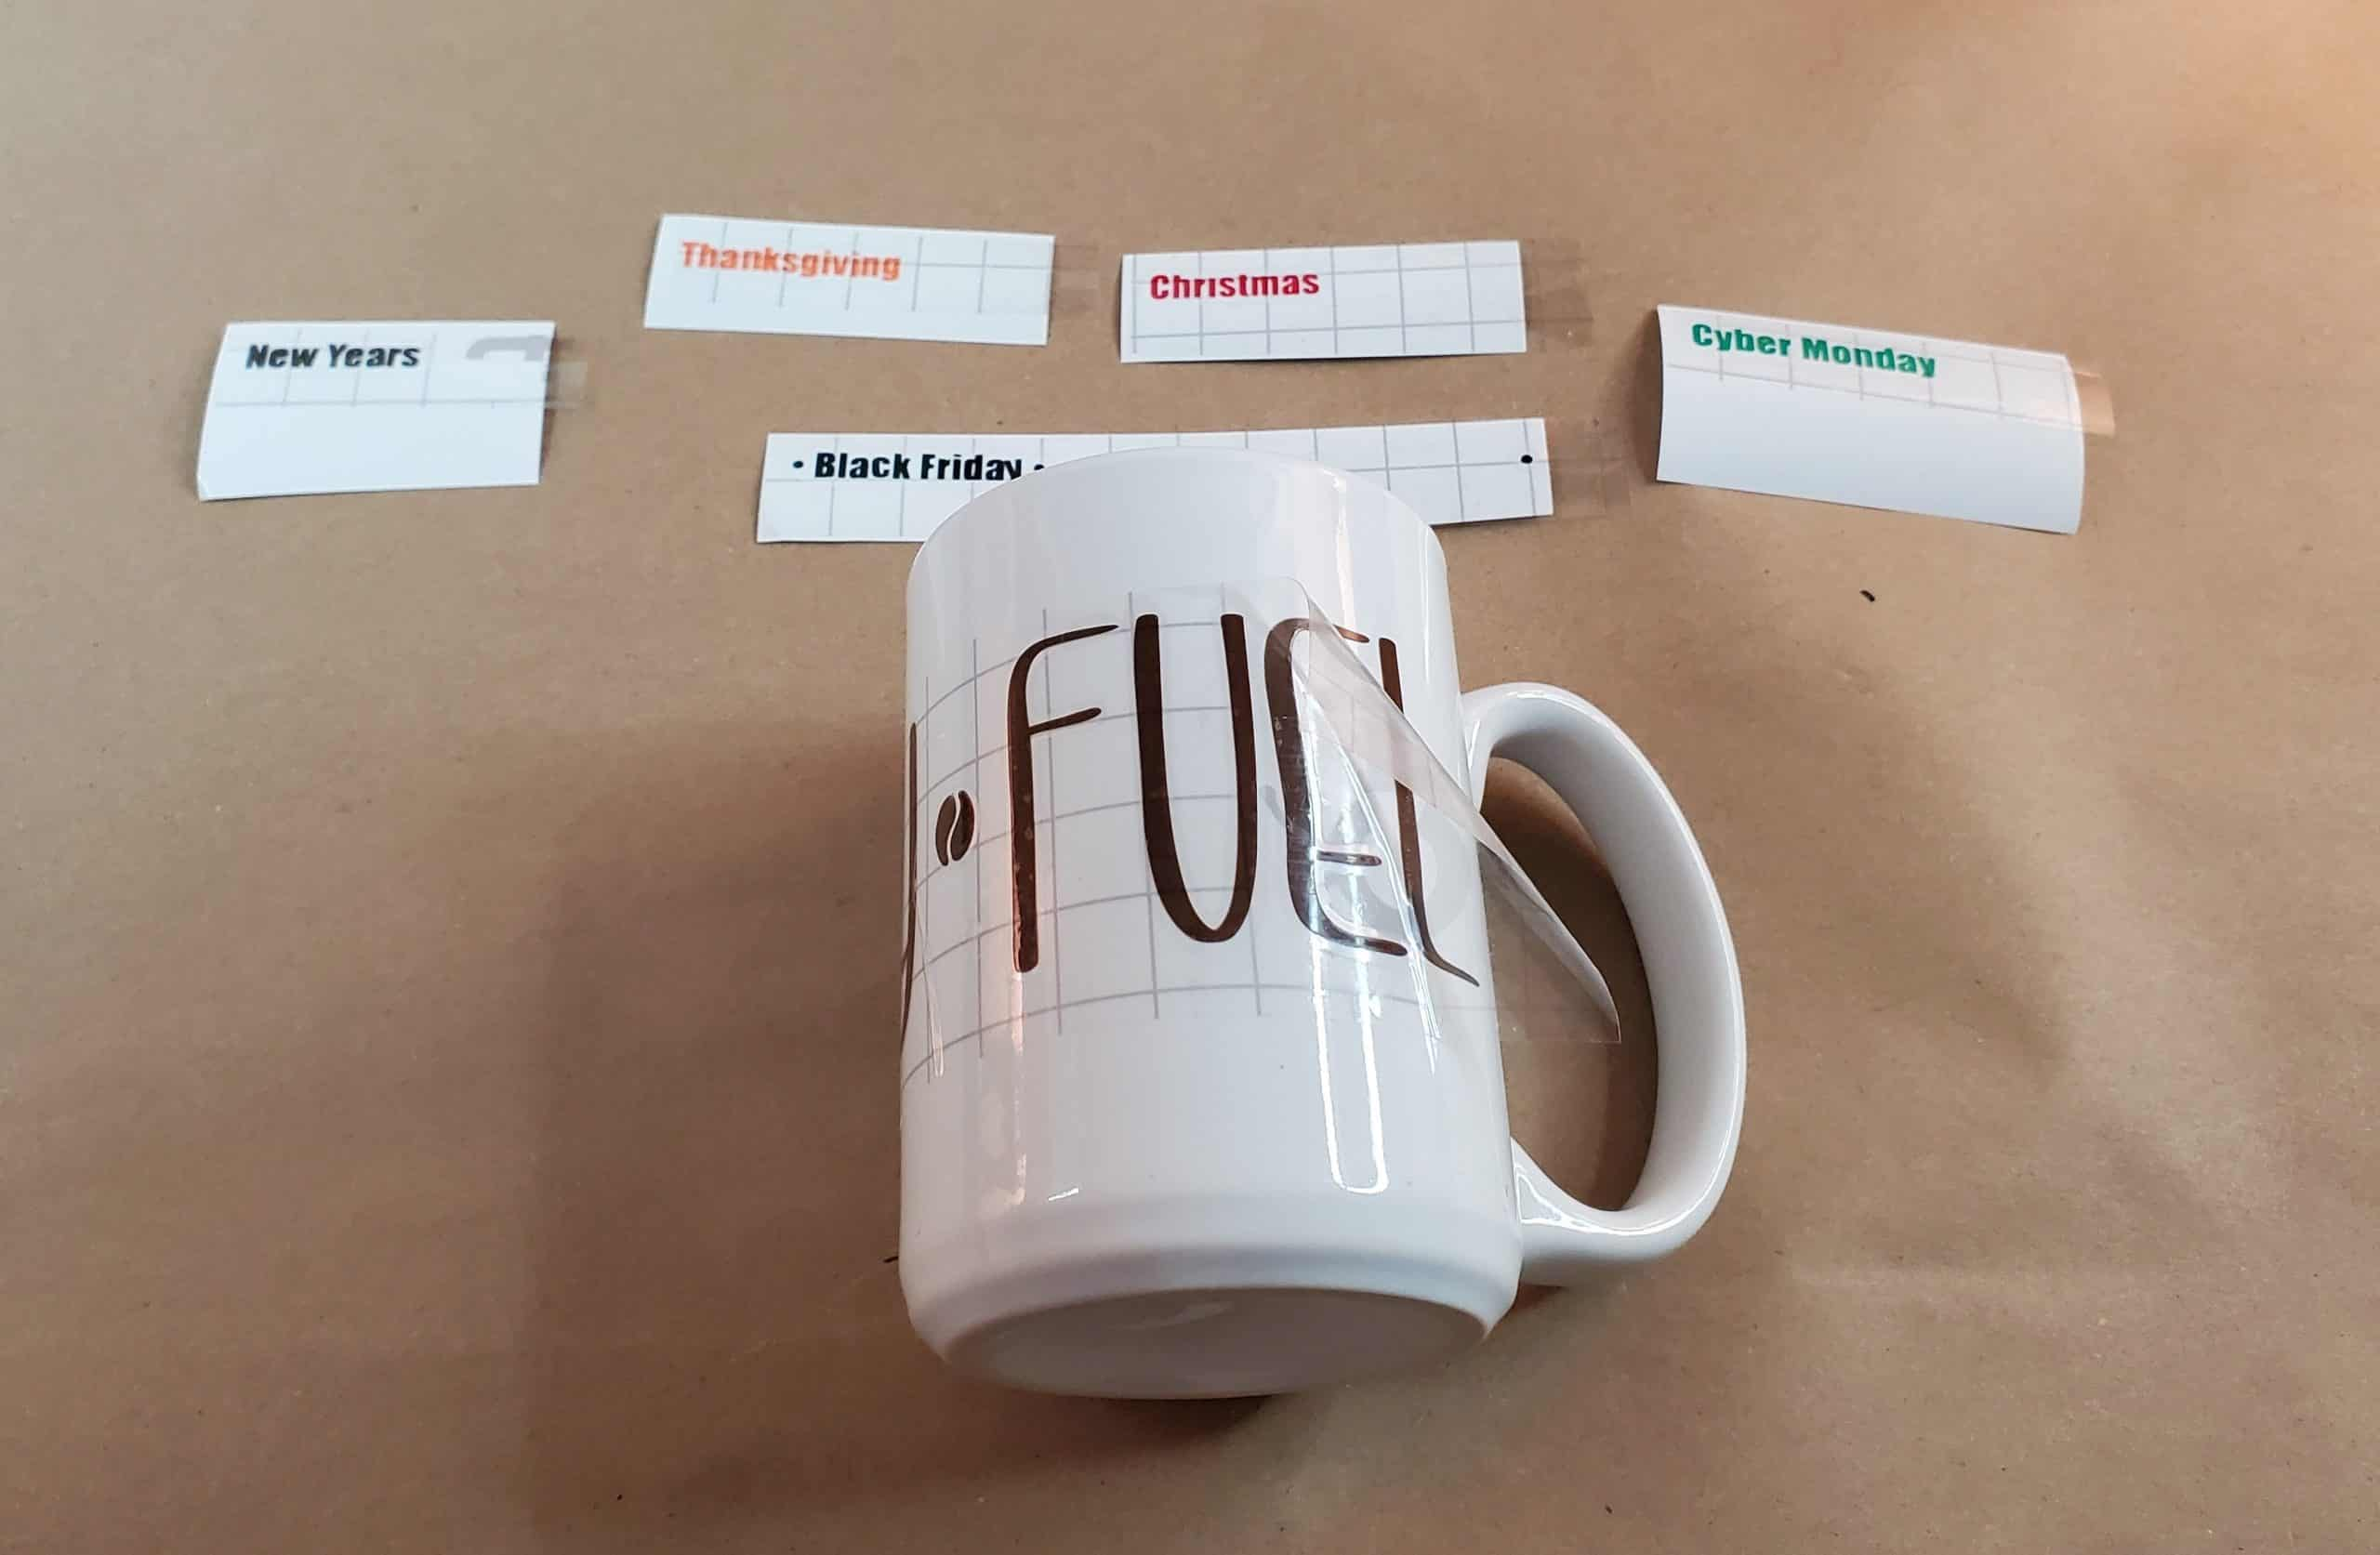 Applying vinyl lettering to mug